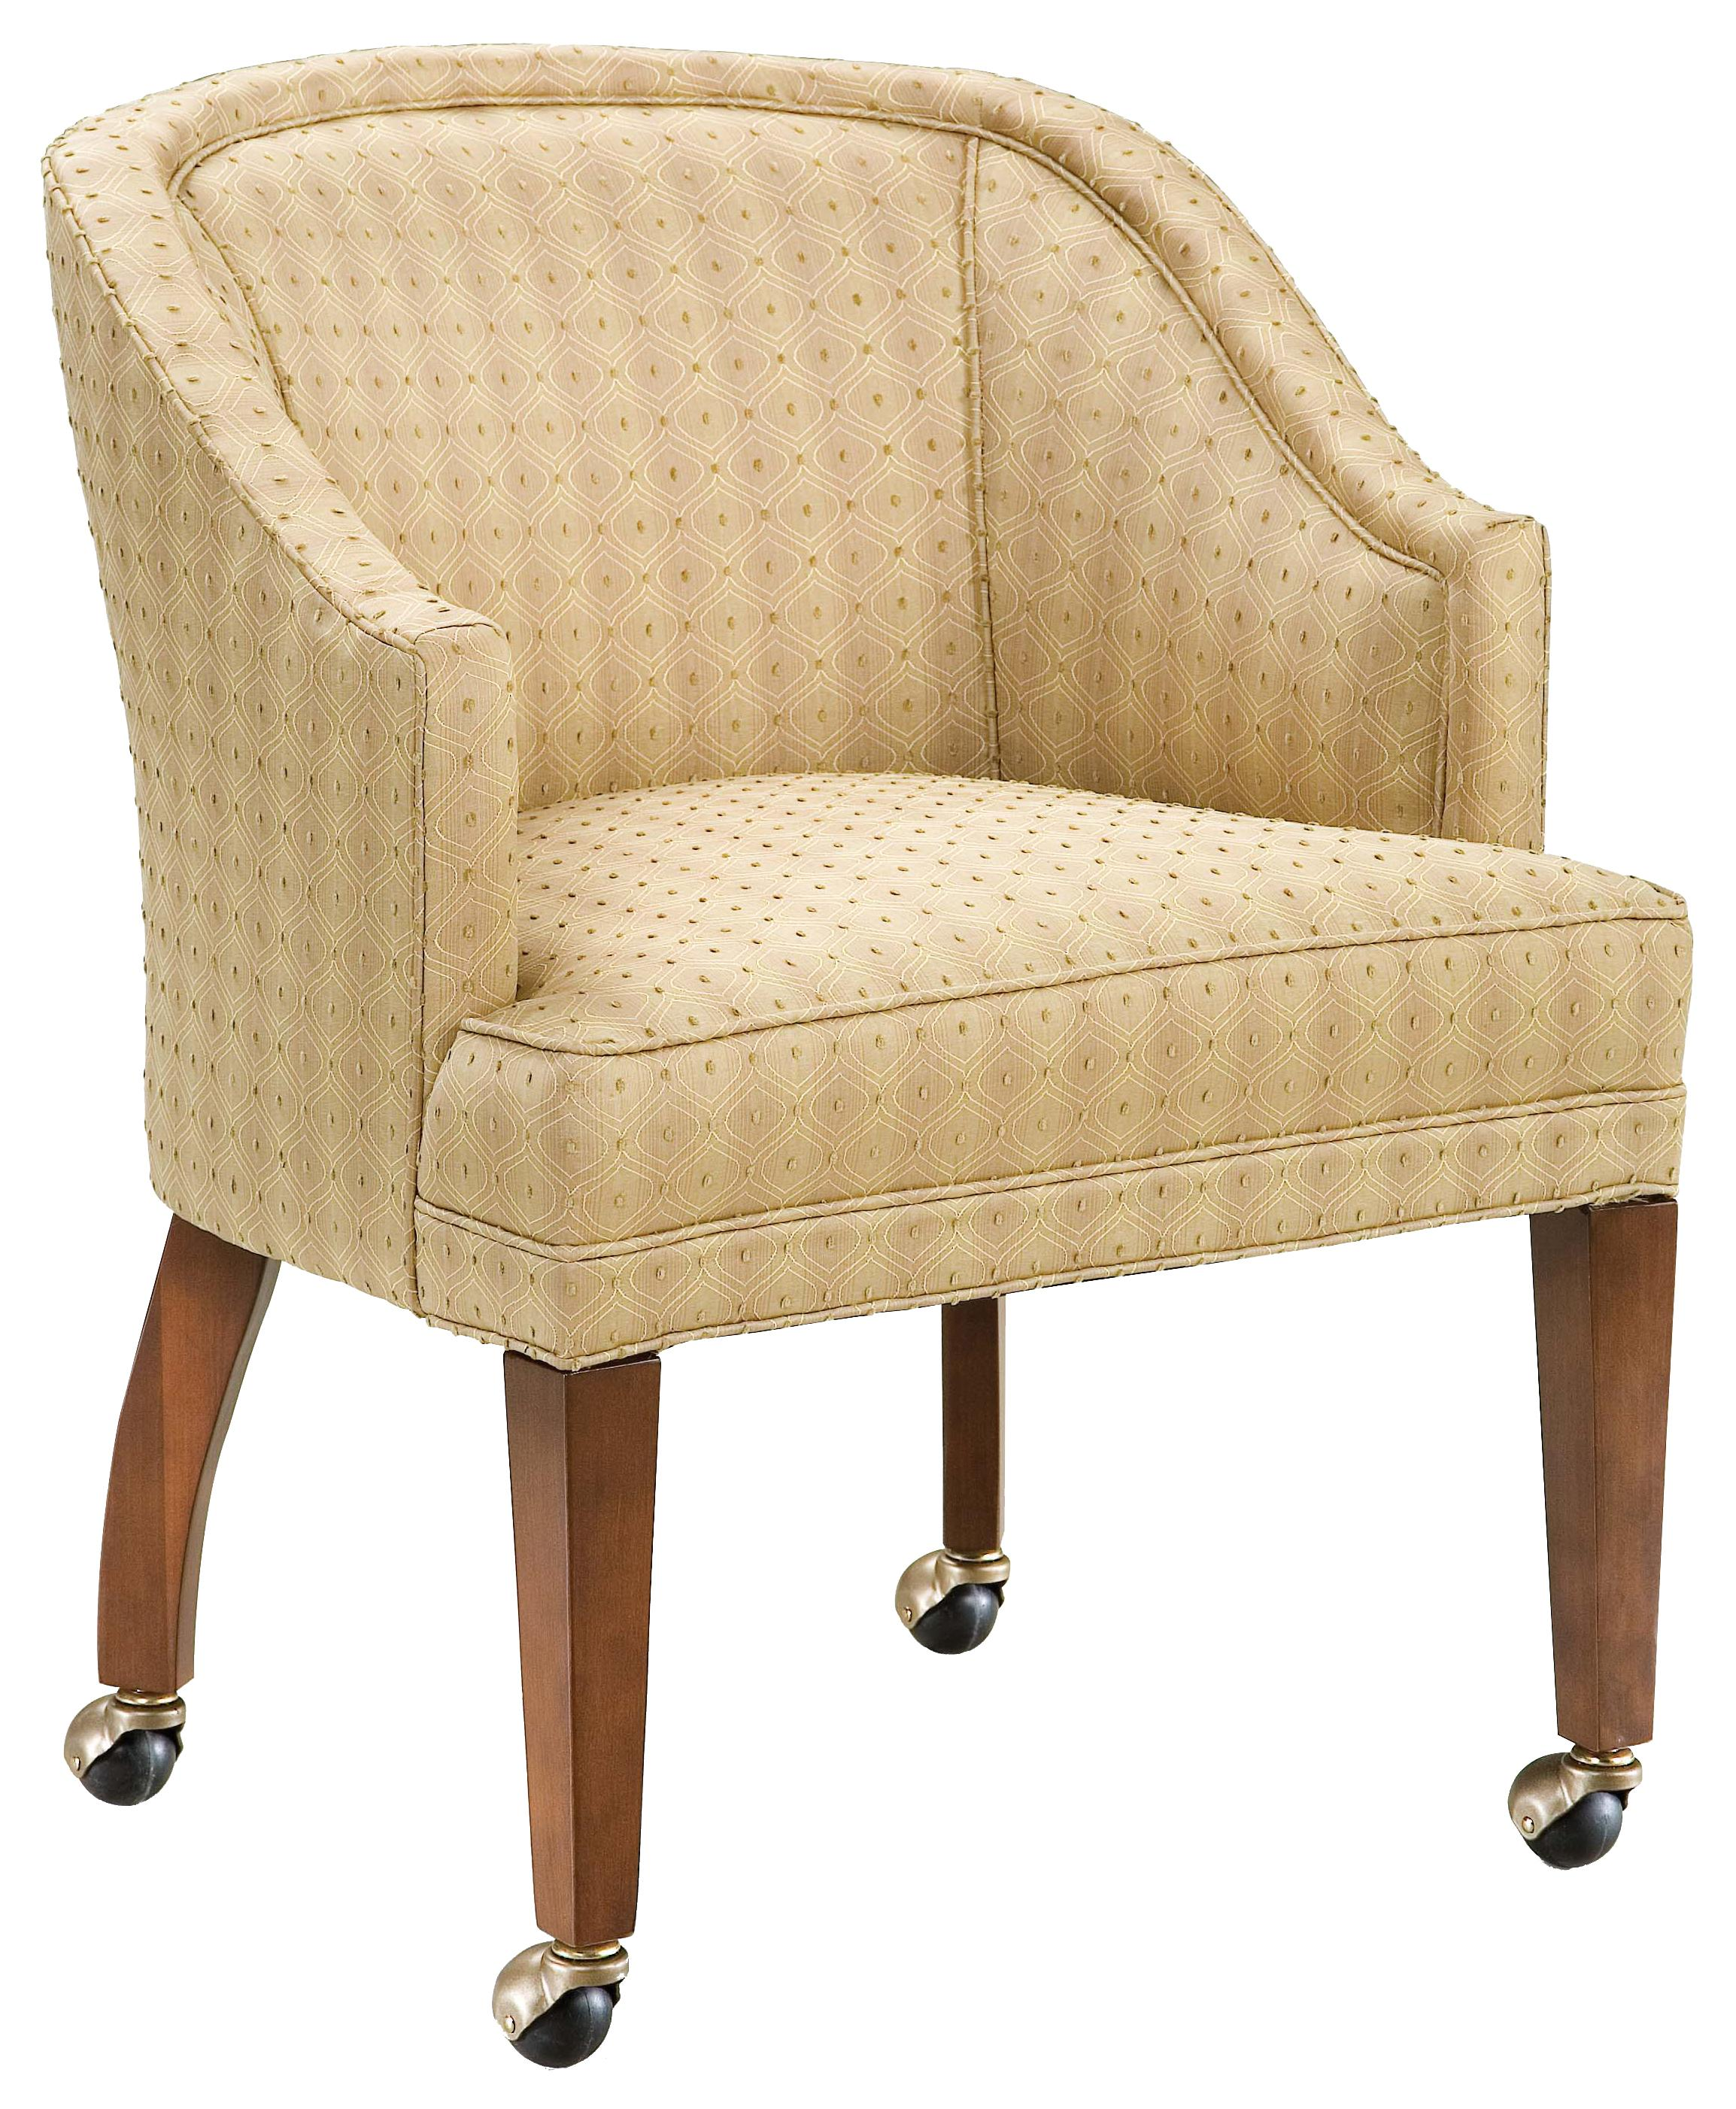 Fairfield Chairs Caster Wheel Lounge Chair - Item Number: 6015-01